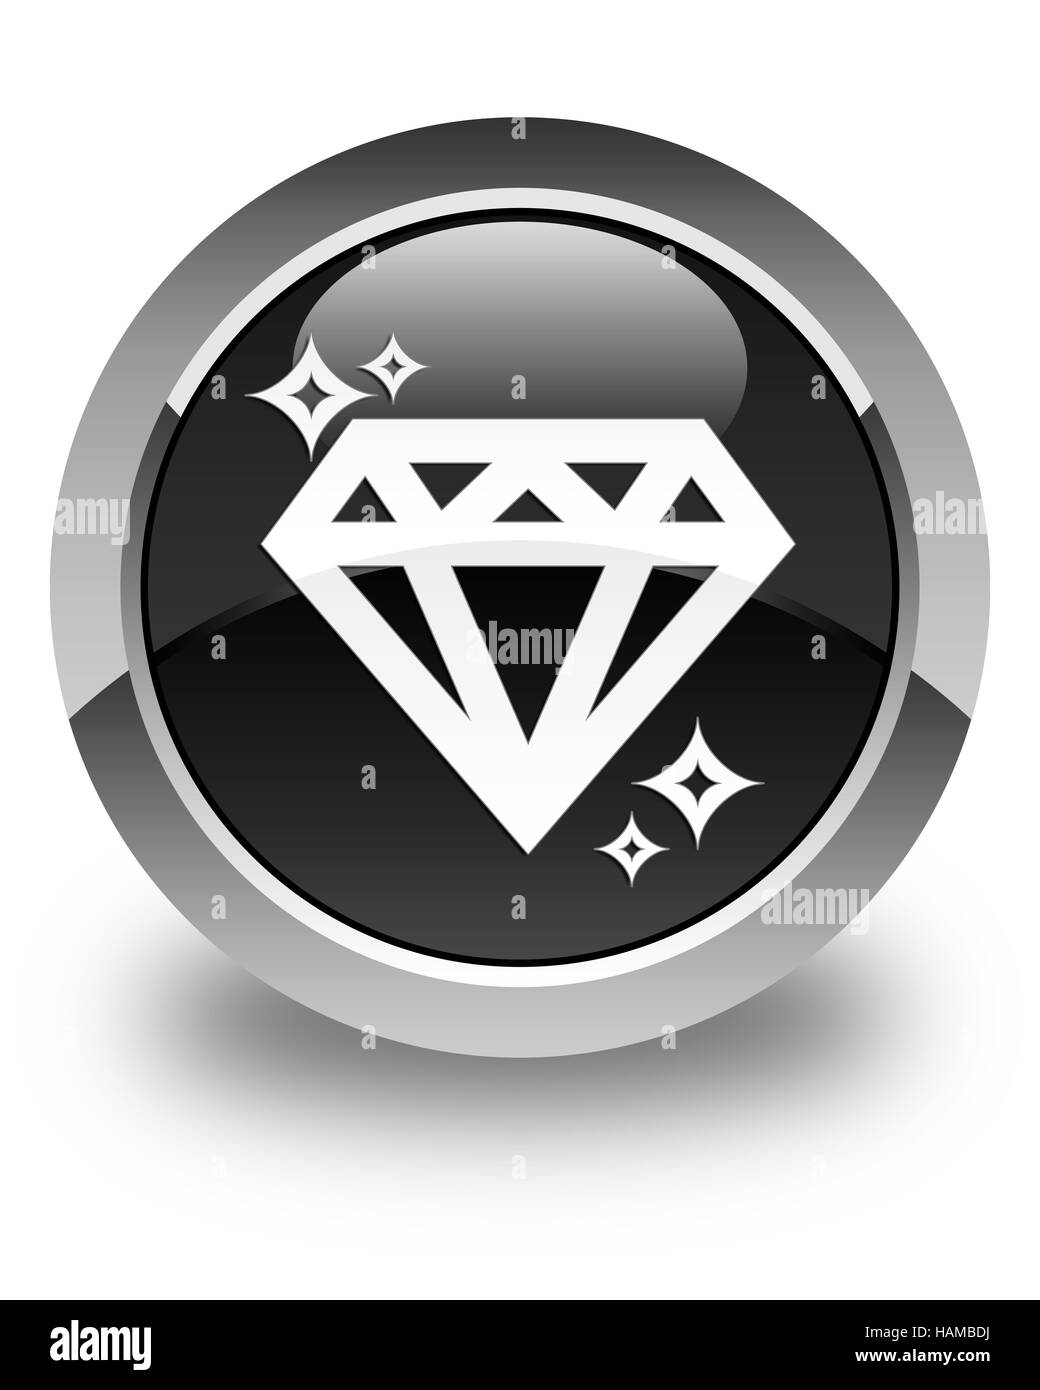 Diamond icon isolated on glossy black round button abstract illustration - Stock Image